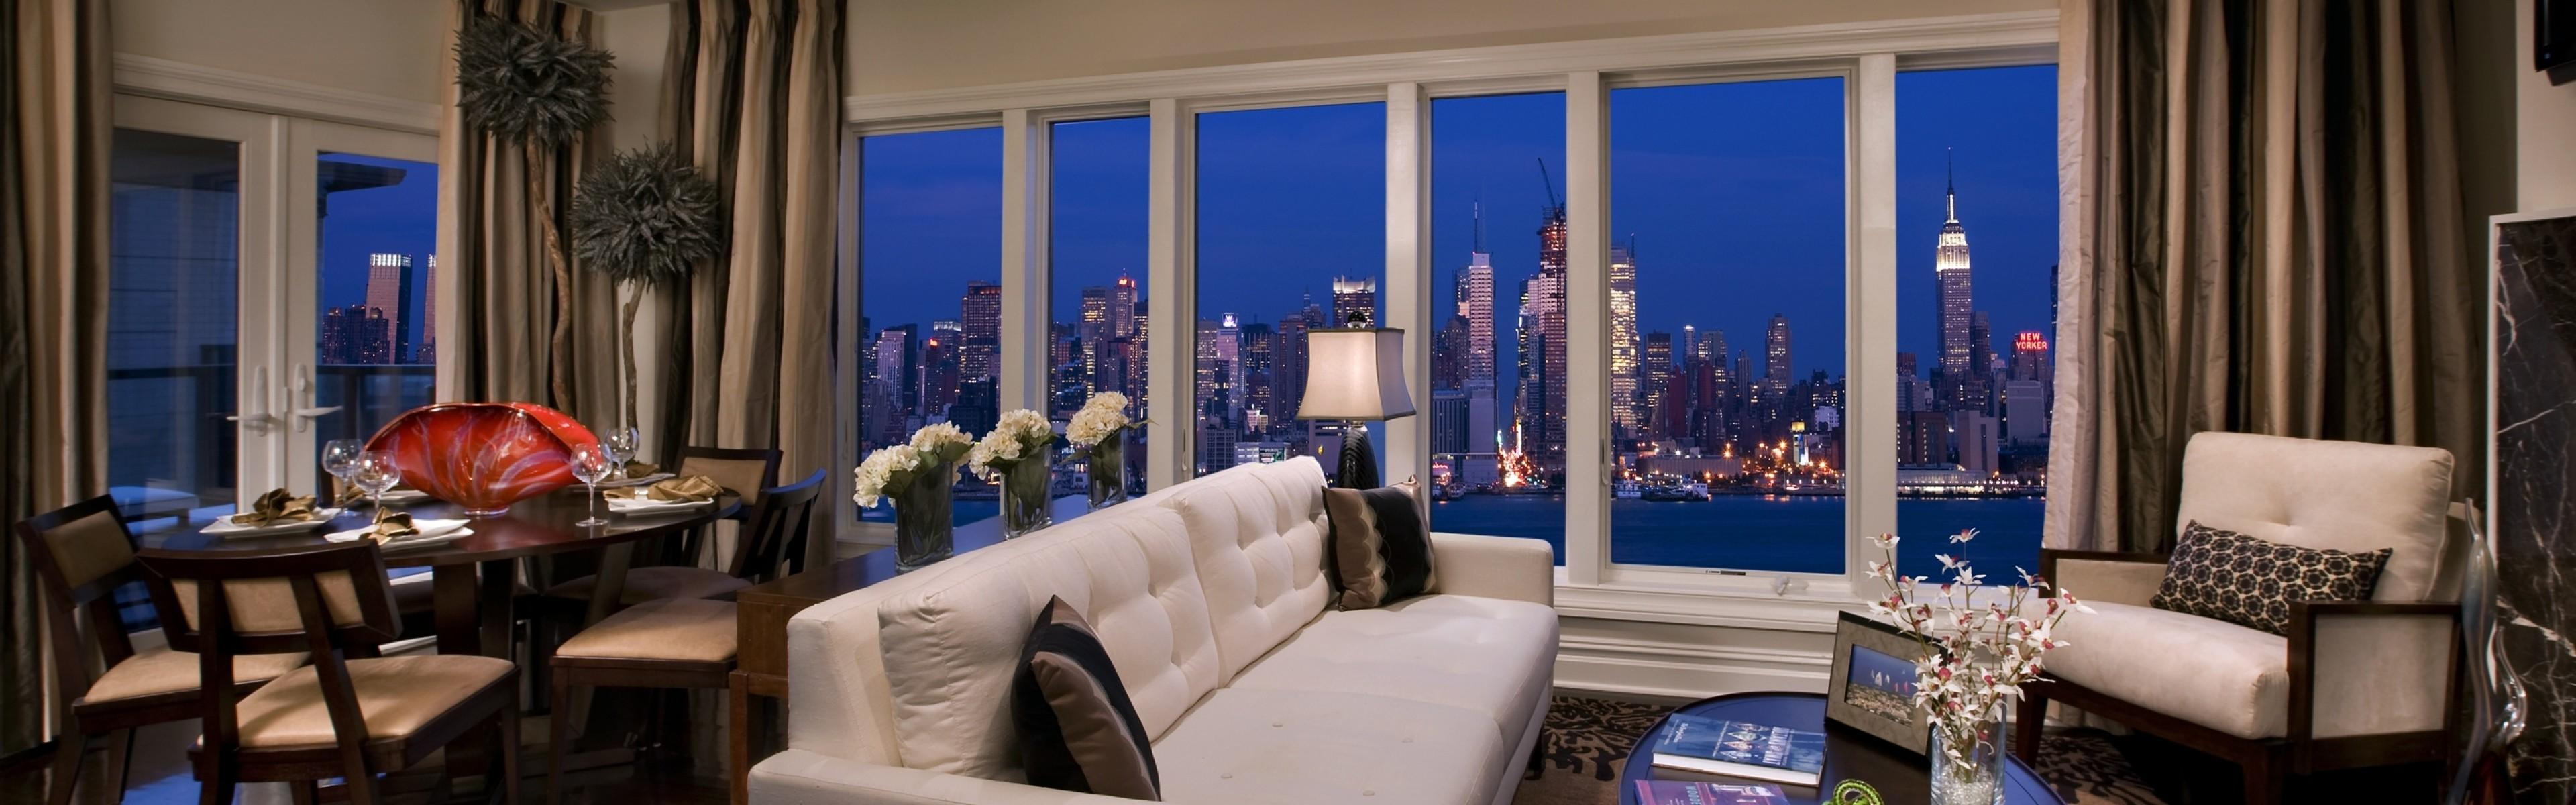 Apartment Luxury Condominium New York City White Open